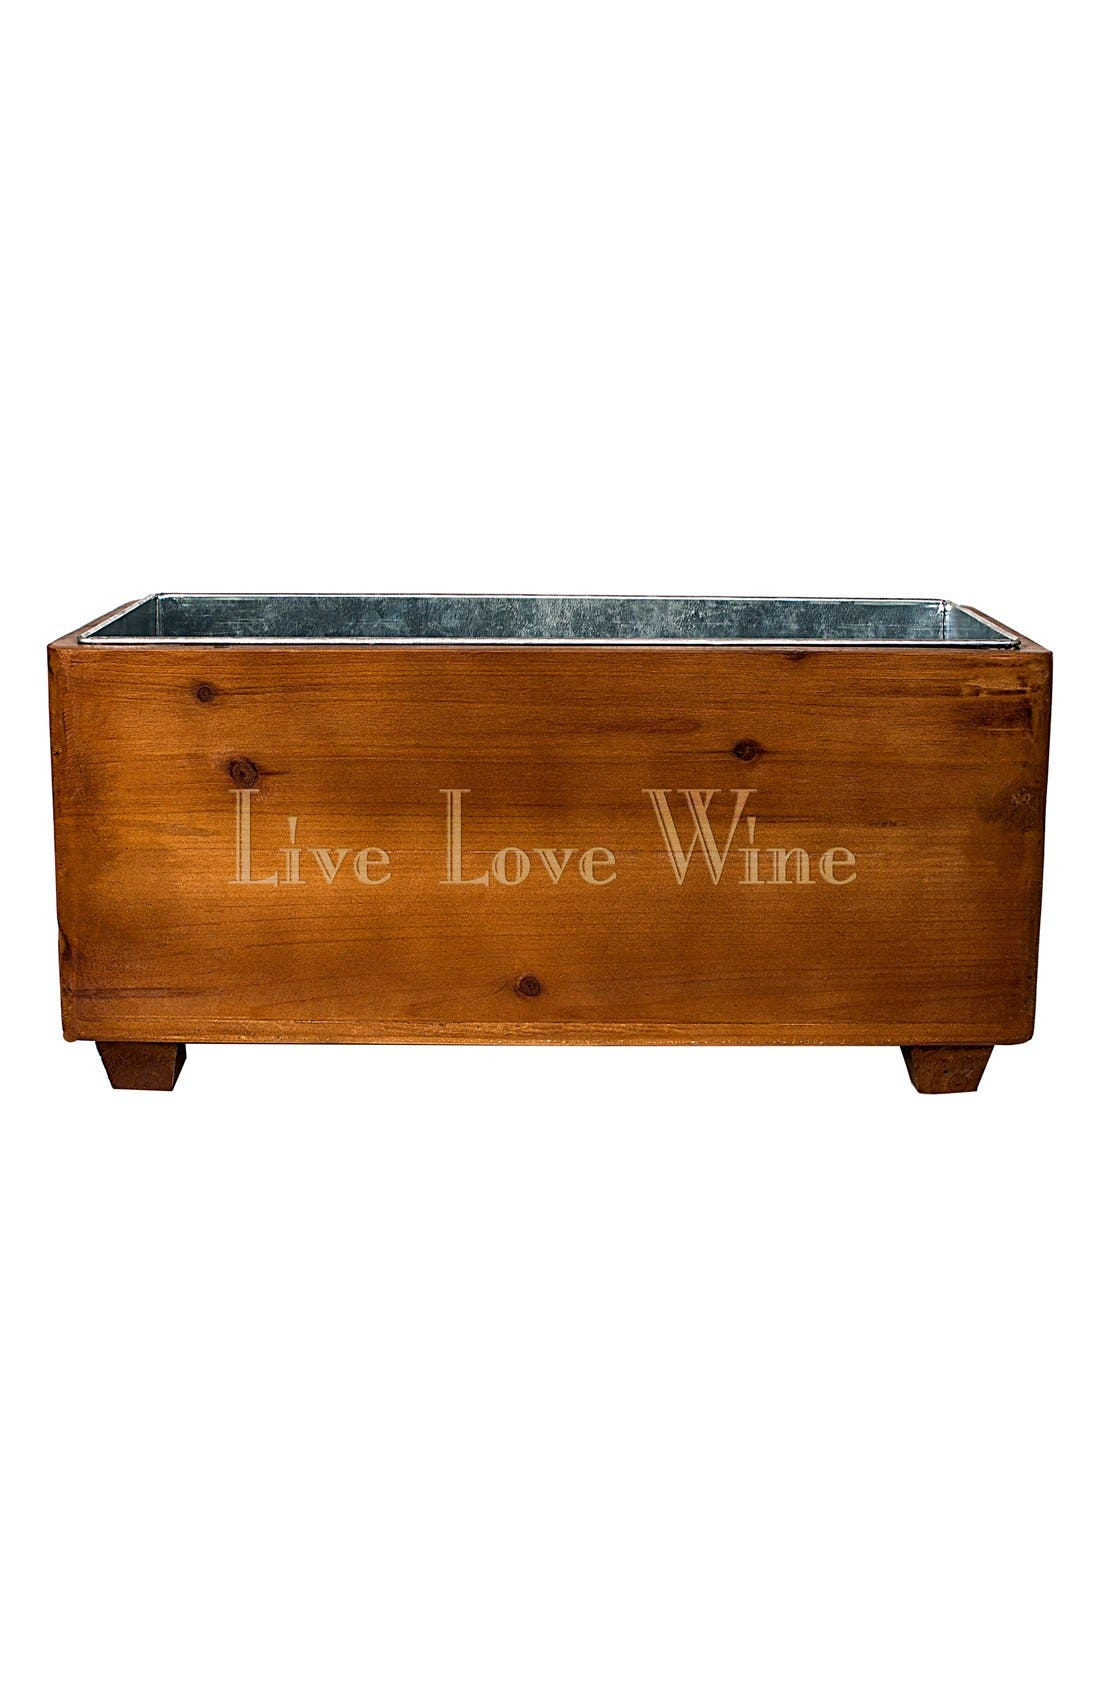 CATHY'S CONCEPTS,                             Live Love Wine Wooden Wine Trough,                             Alternate thumbnail 2, color,                             BROWN